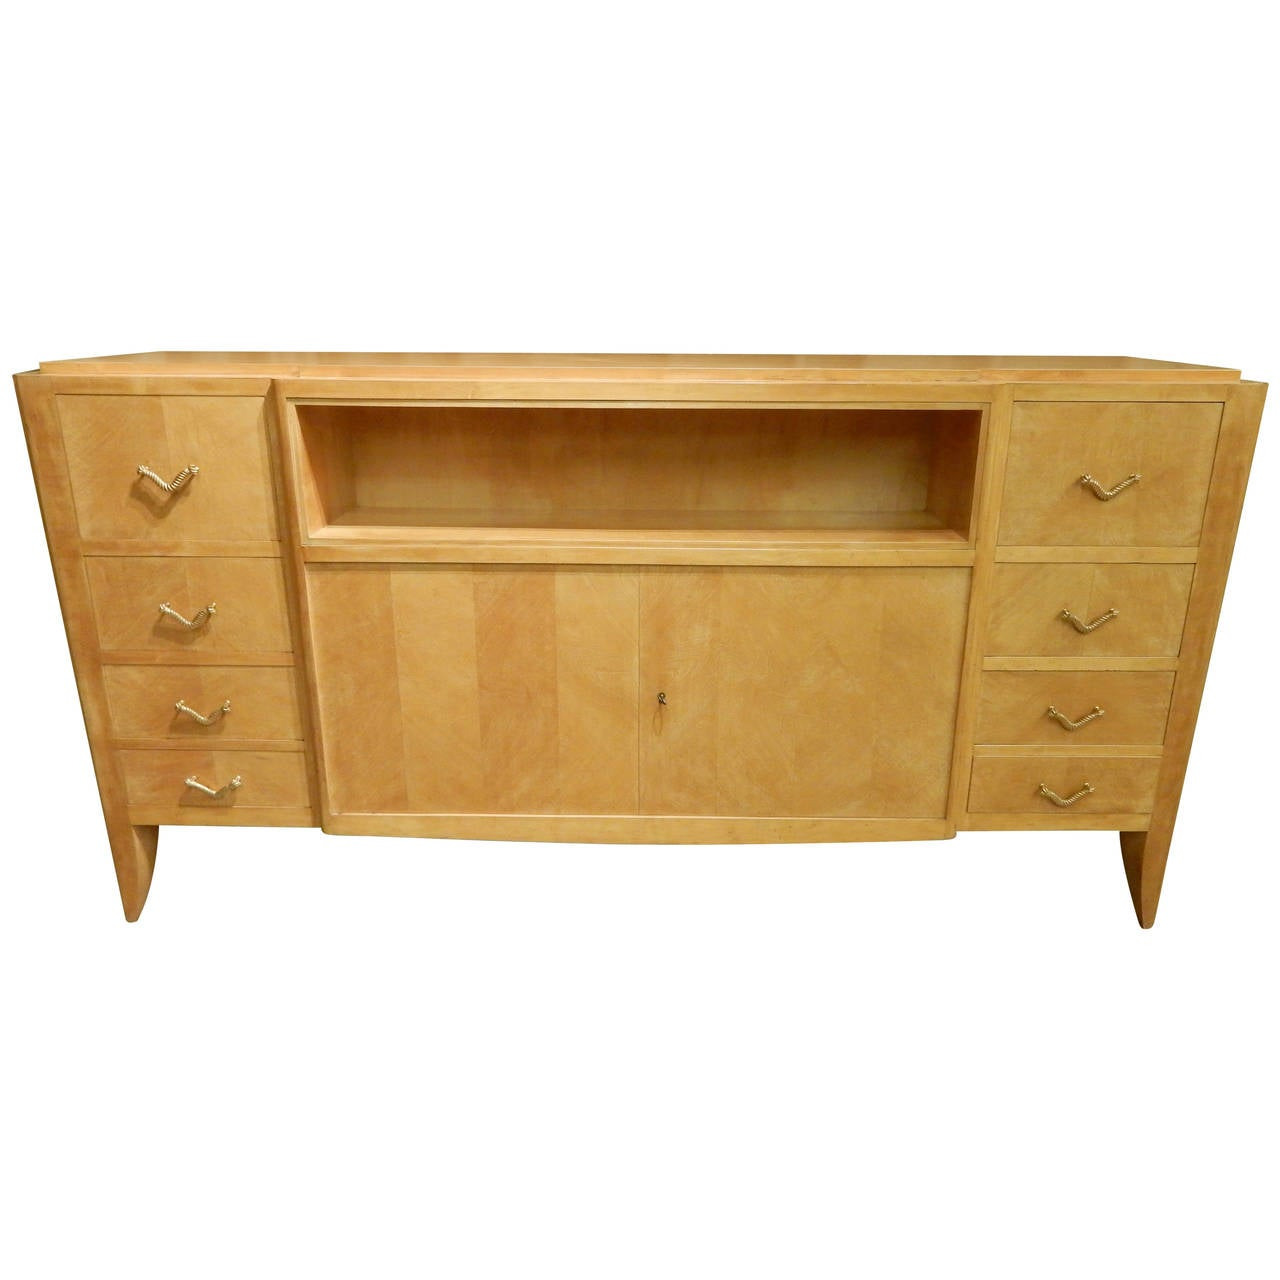 french mid century modern sideboard at 1stdibs. Black Bedroom Furniture Sets. Home Design Ideas